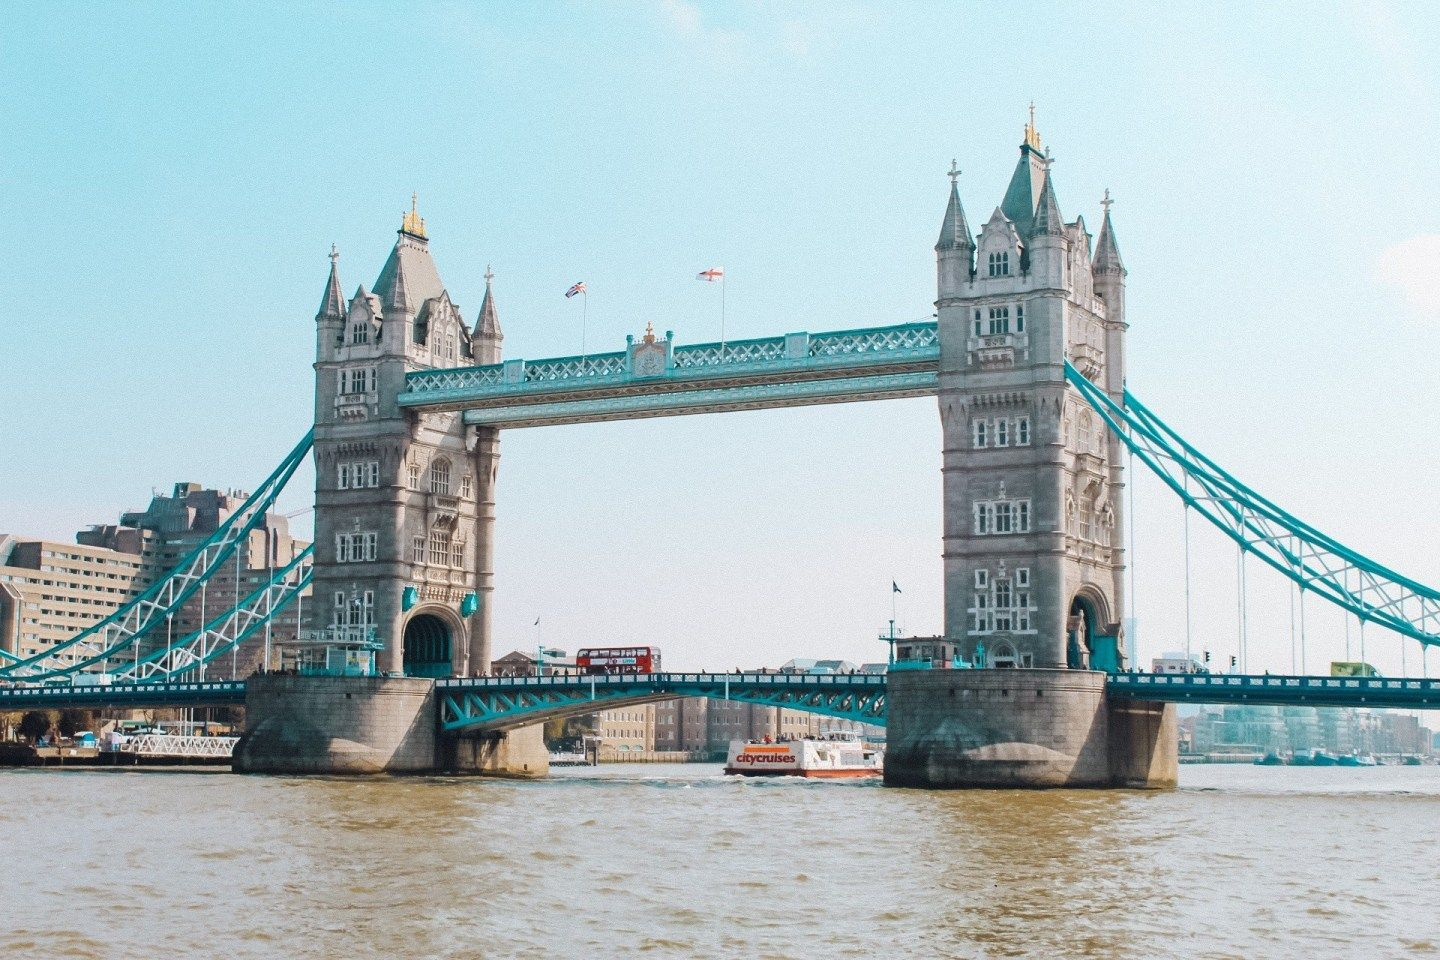 Exploring London Bridge + Restaurants Near London Bridge Station | London  bridge, Days out in london, Tower bridge london